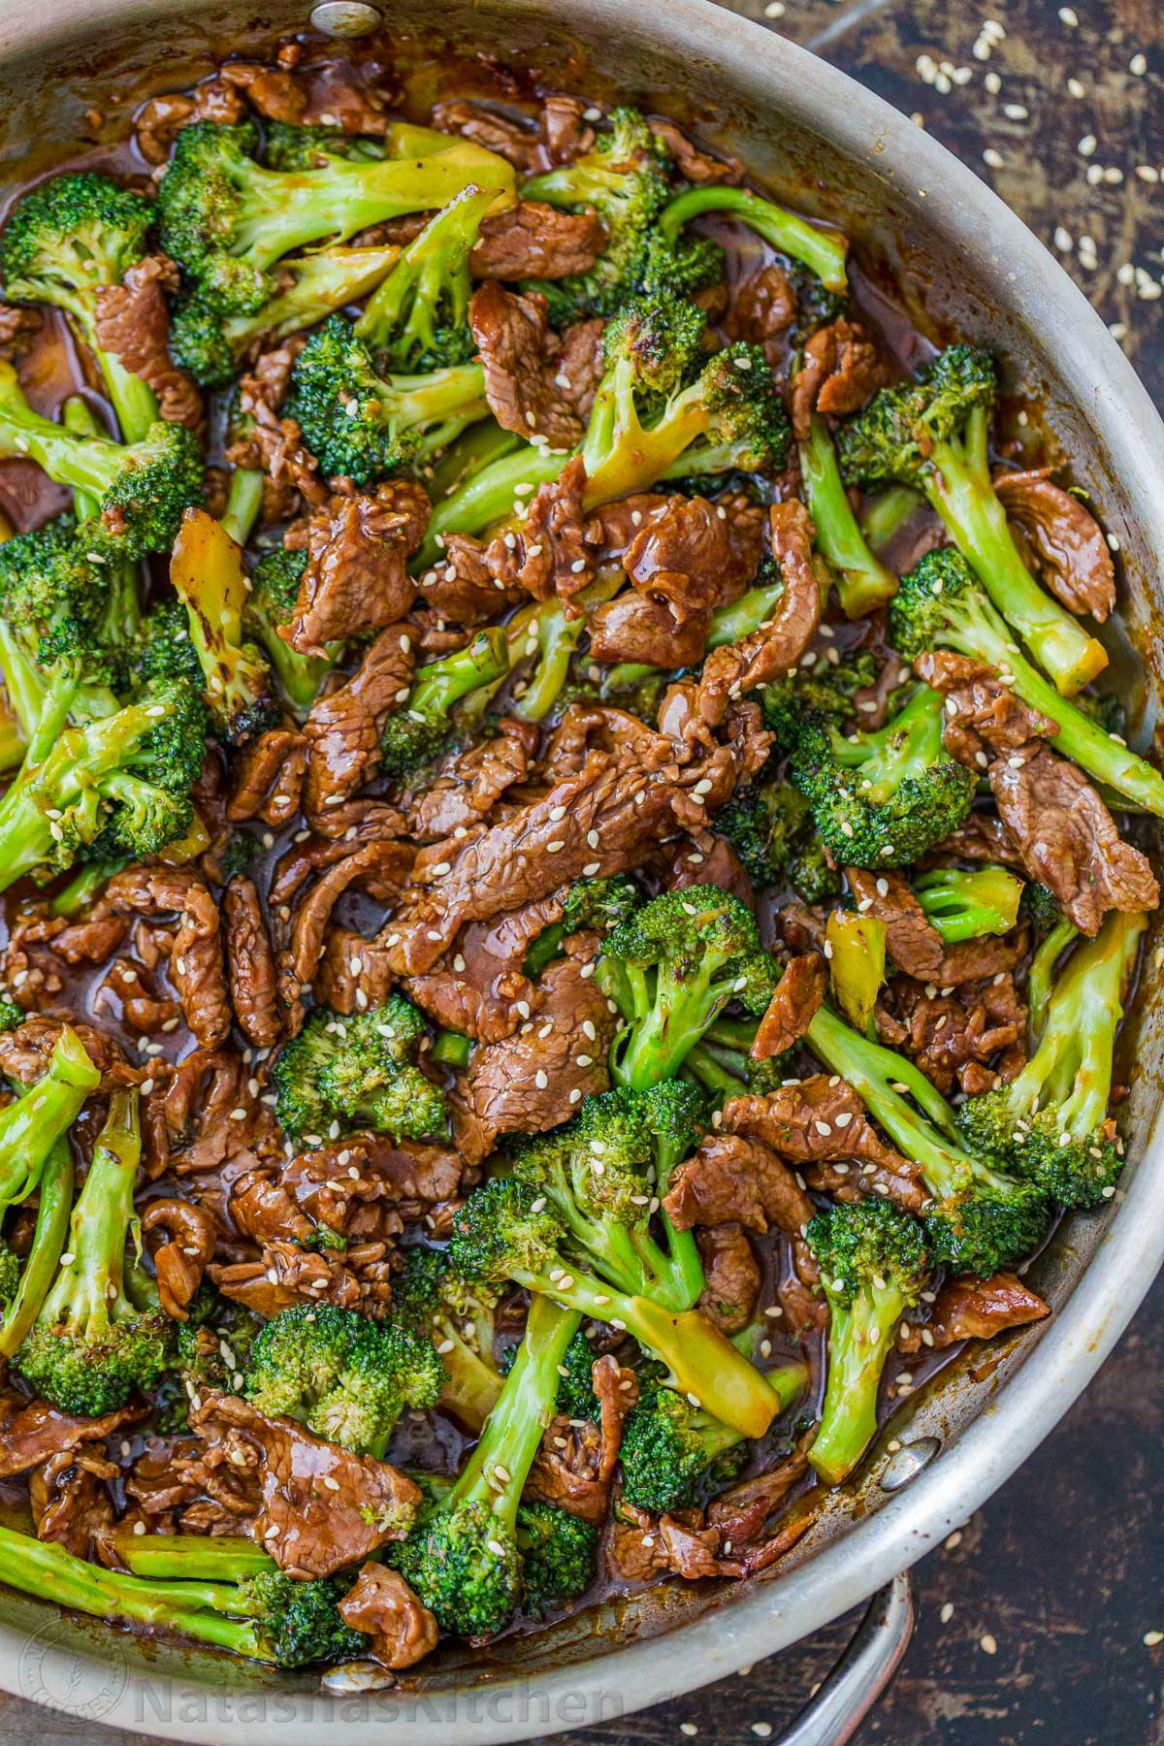 Beef and Broccoli Recipe - Recipes With Beef Strips